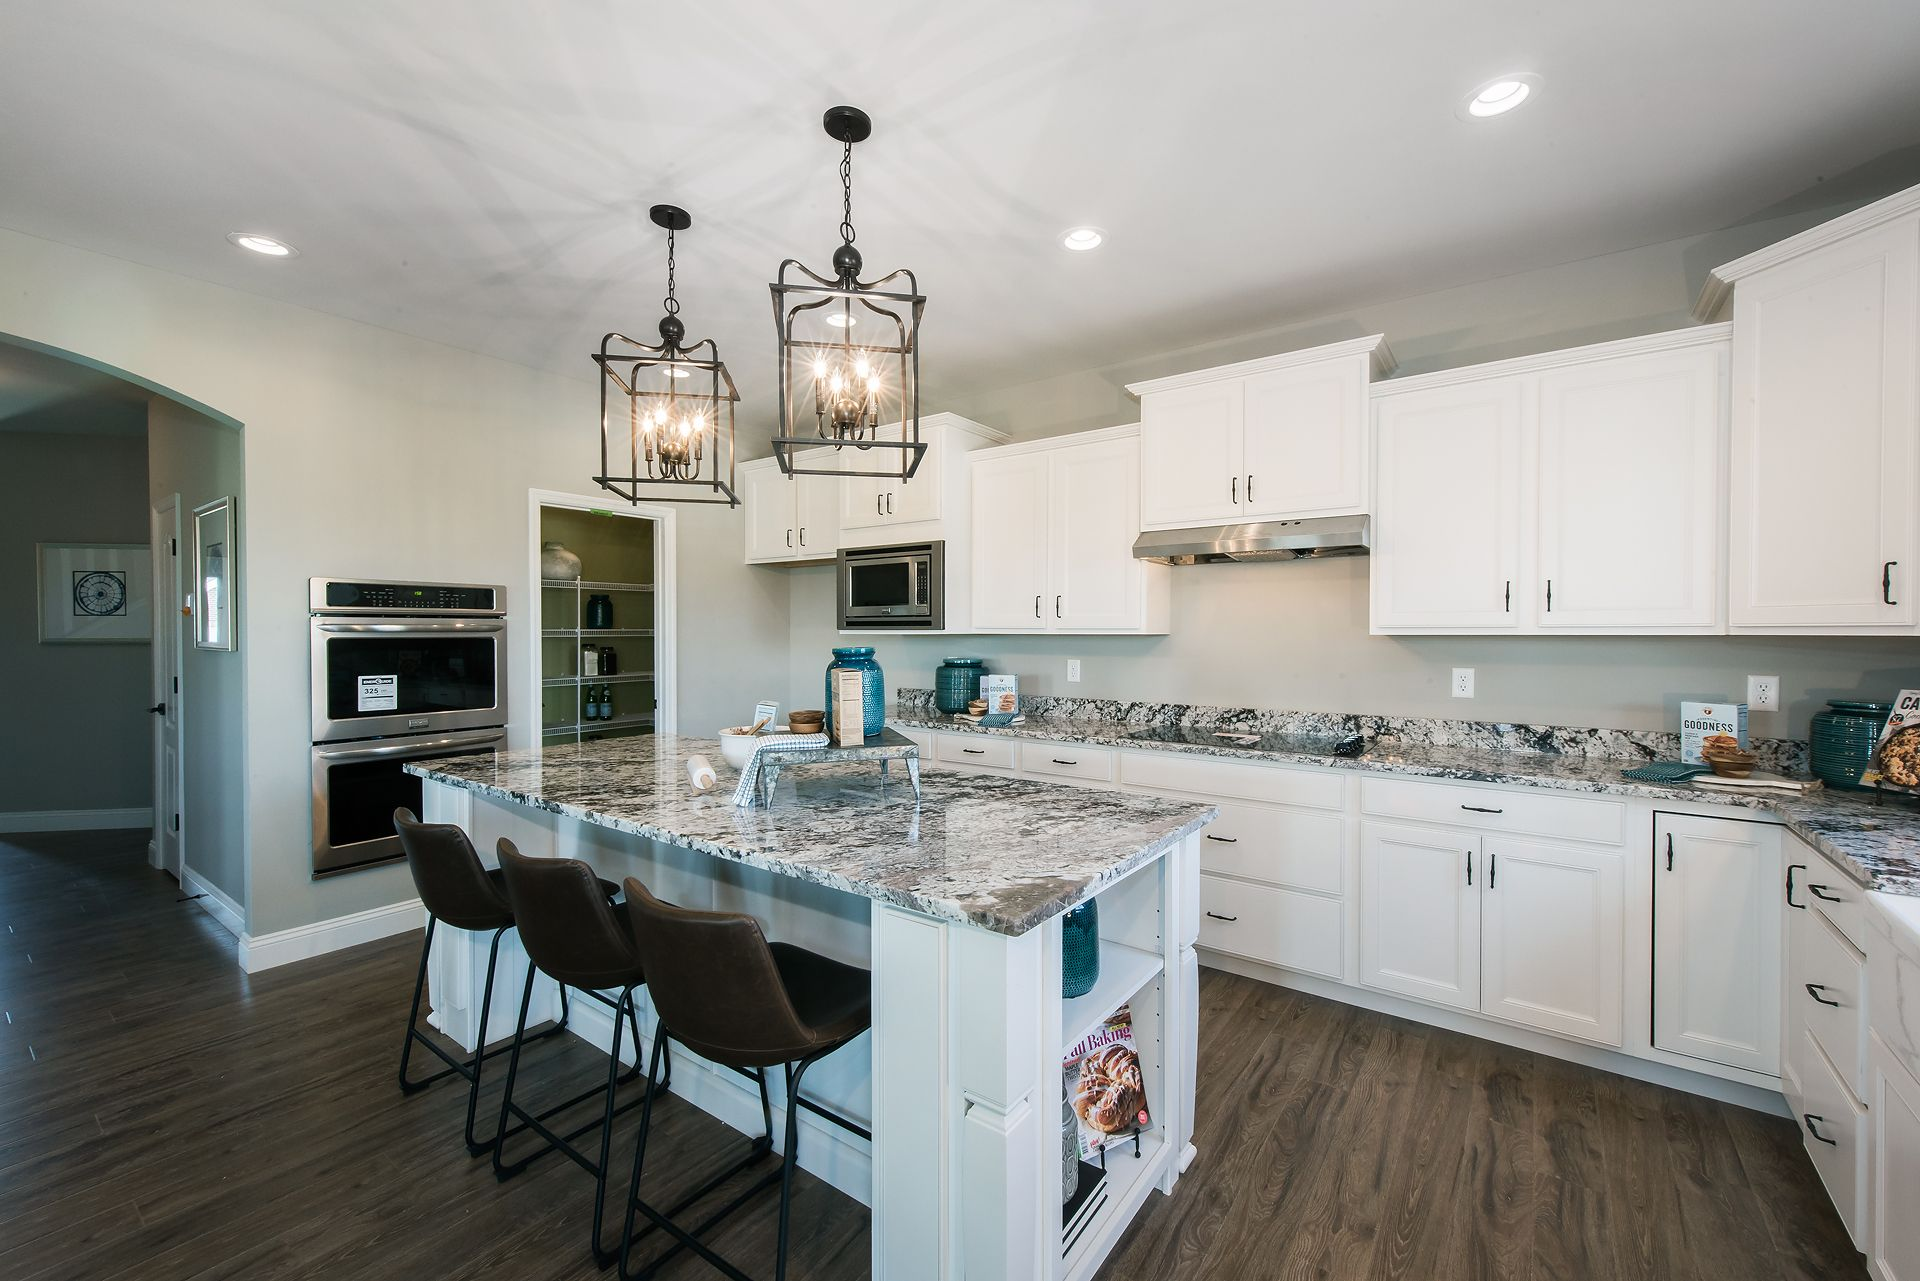 Kitchen-in-The Lakeland-at-Winterbrooke-in-Saint Charles